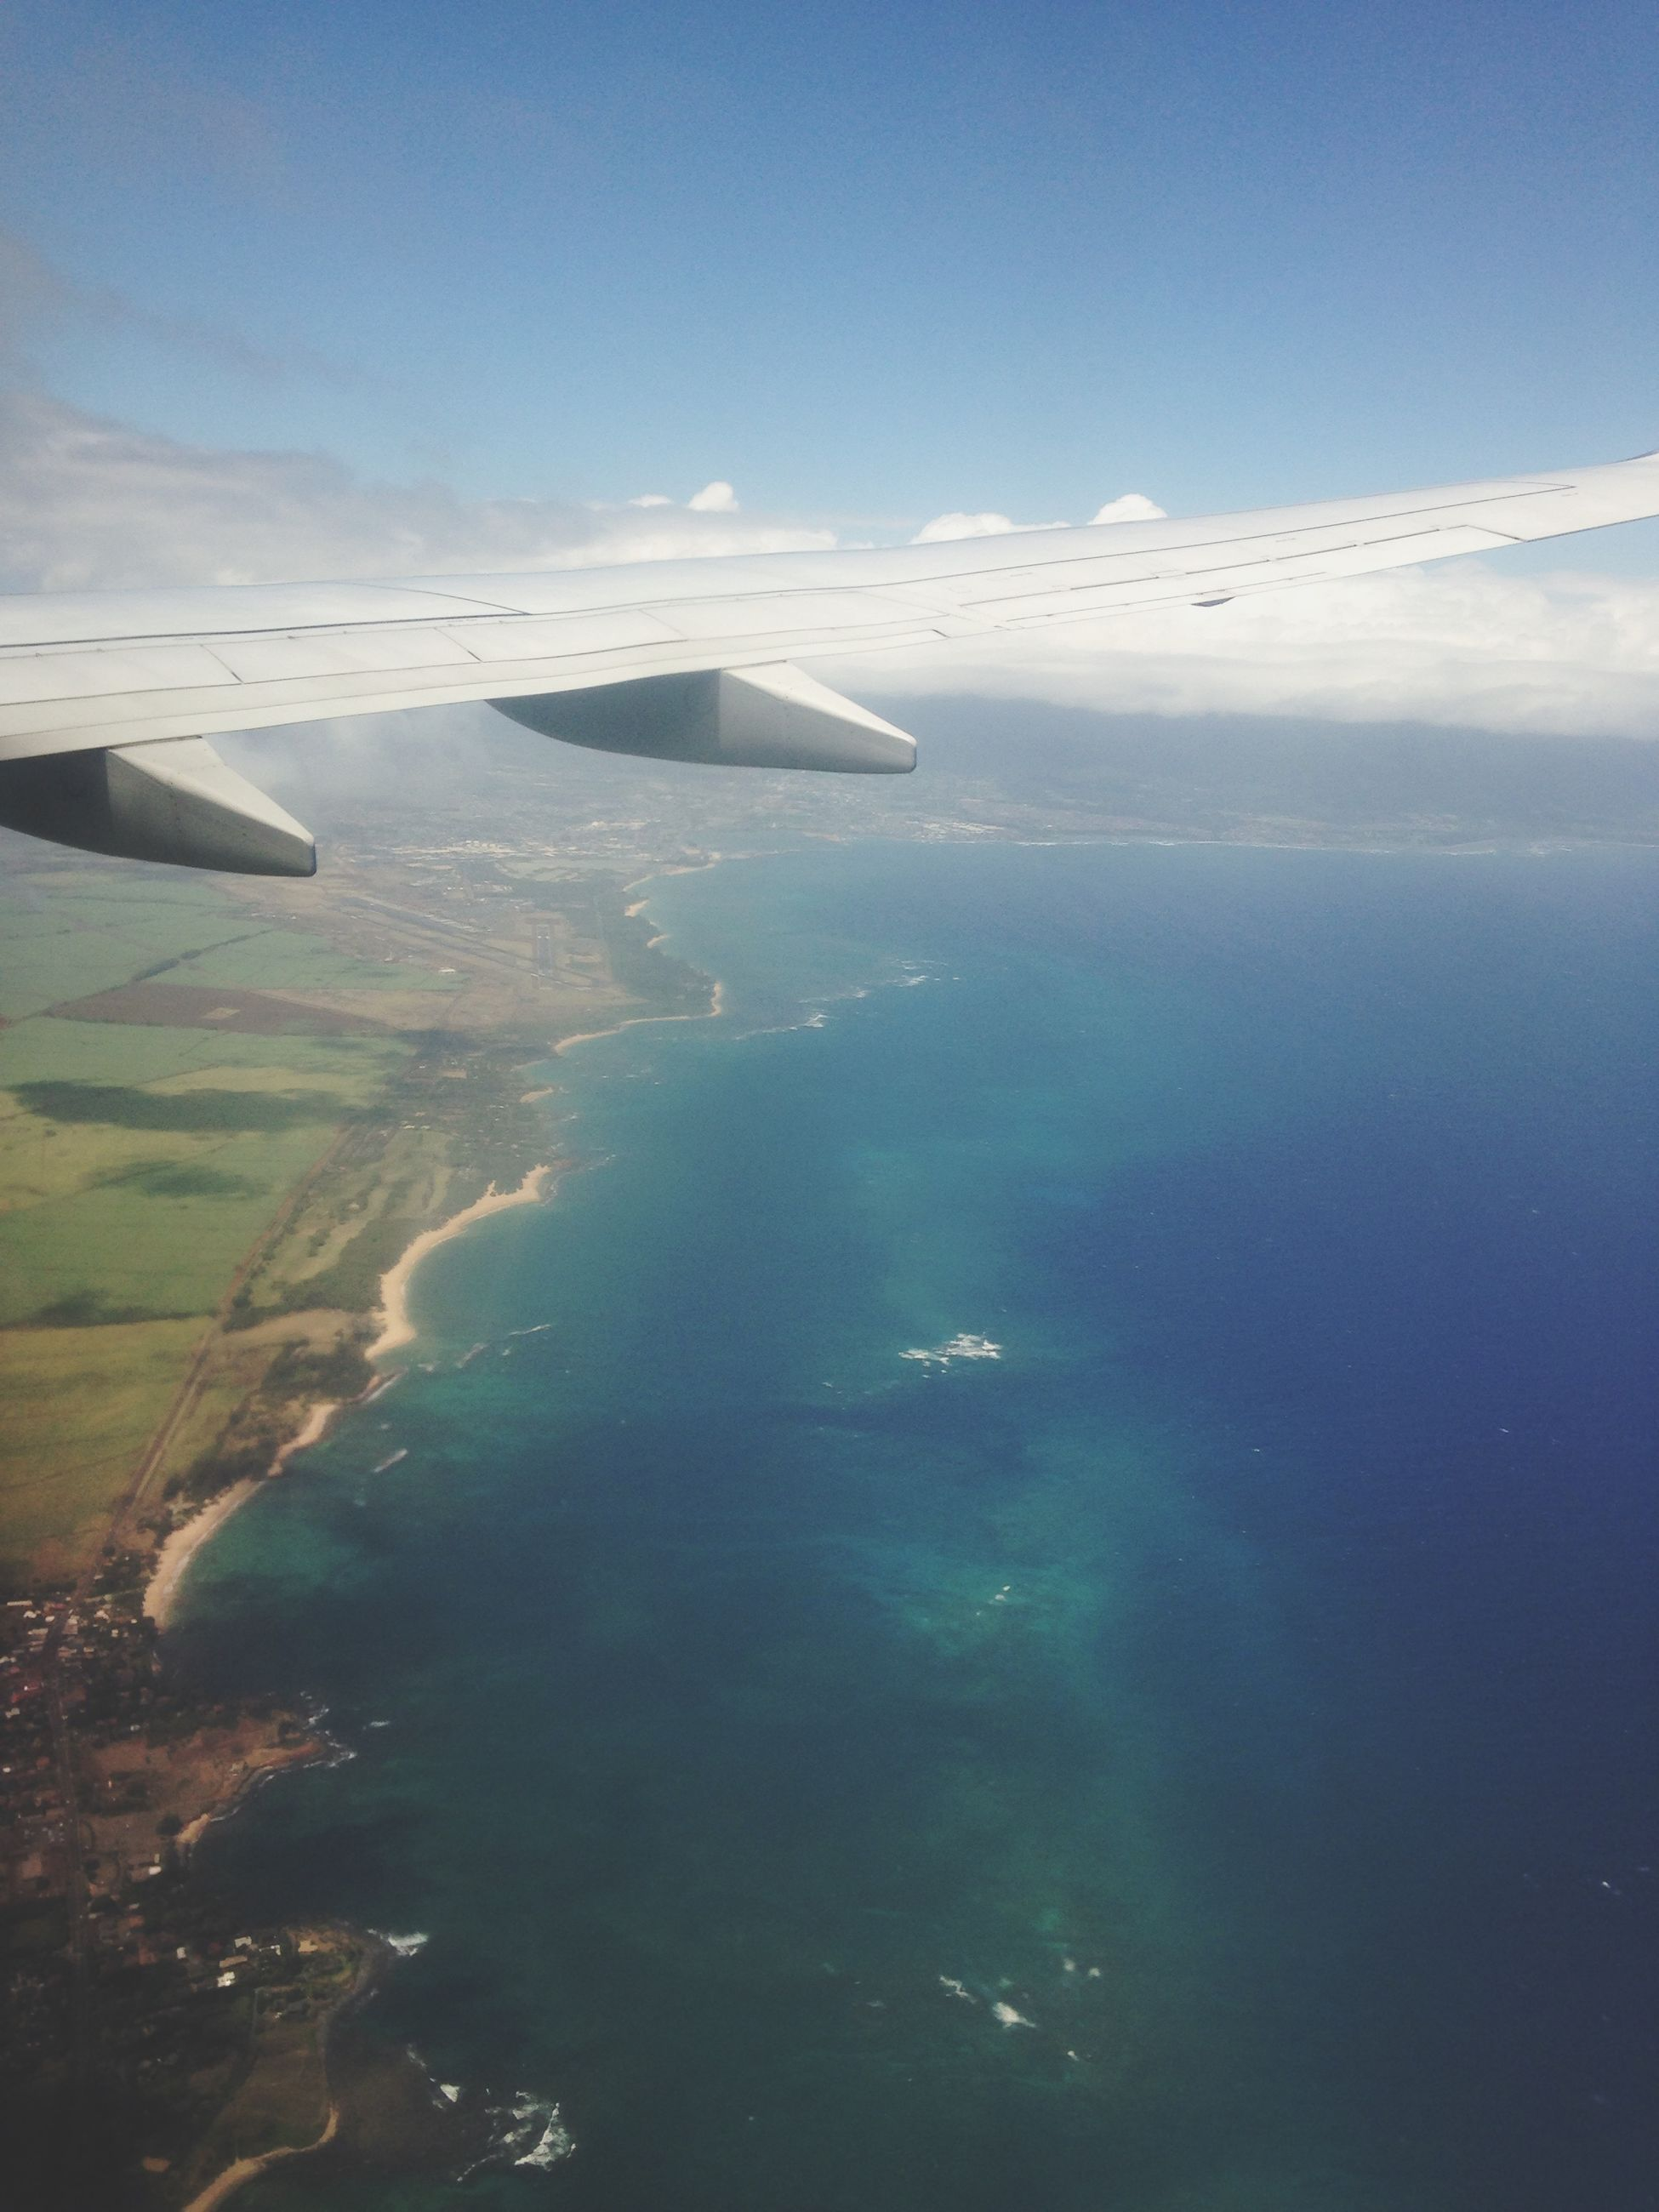 transportation, airplane, aerial view, air vehicle, mode of transport, flying, aircraft wing, sea, scenics, water, part of, mid-air, beauty in nature, travel, cropped, nature, sky, journey, tranquil scene, landscape